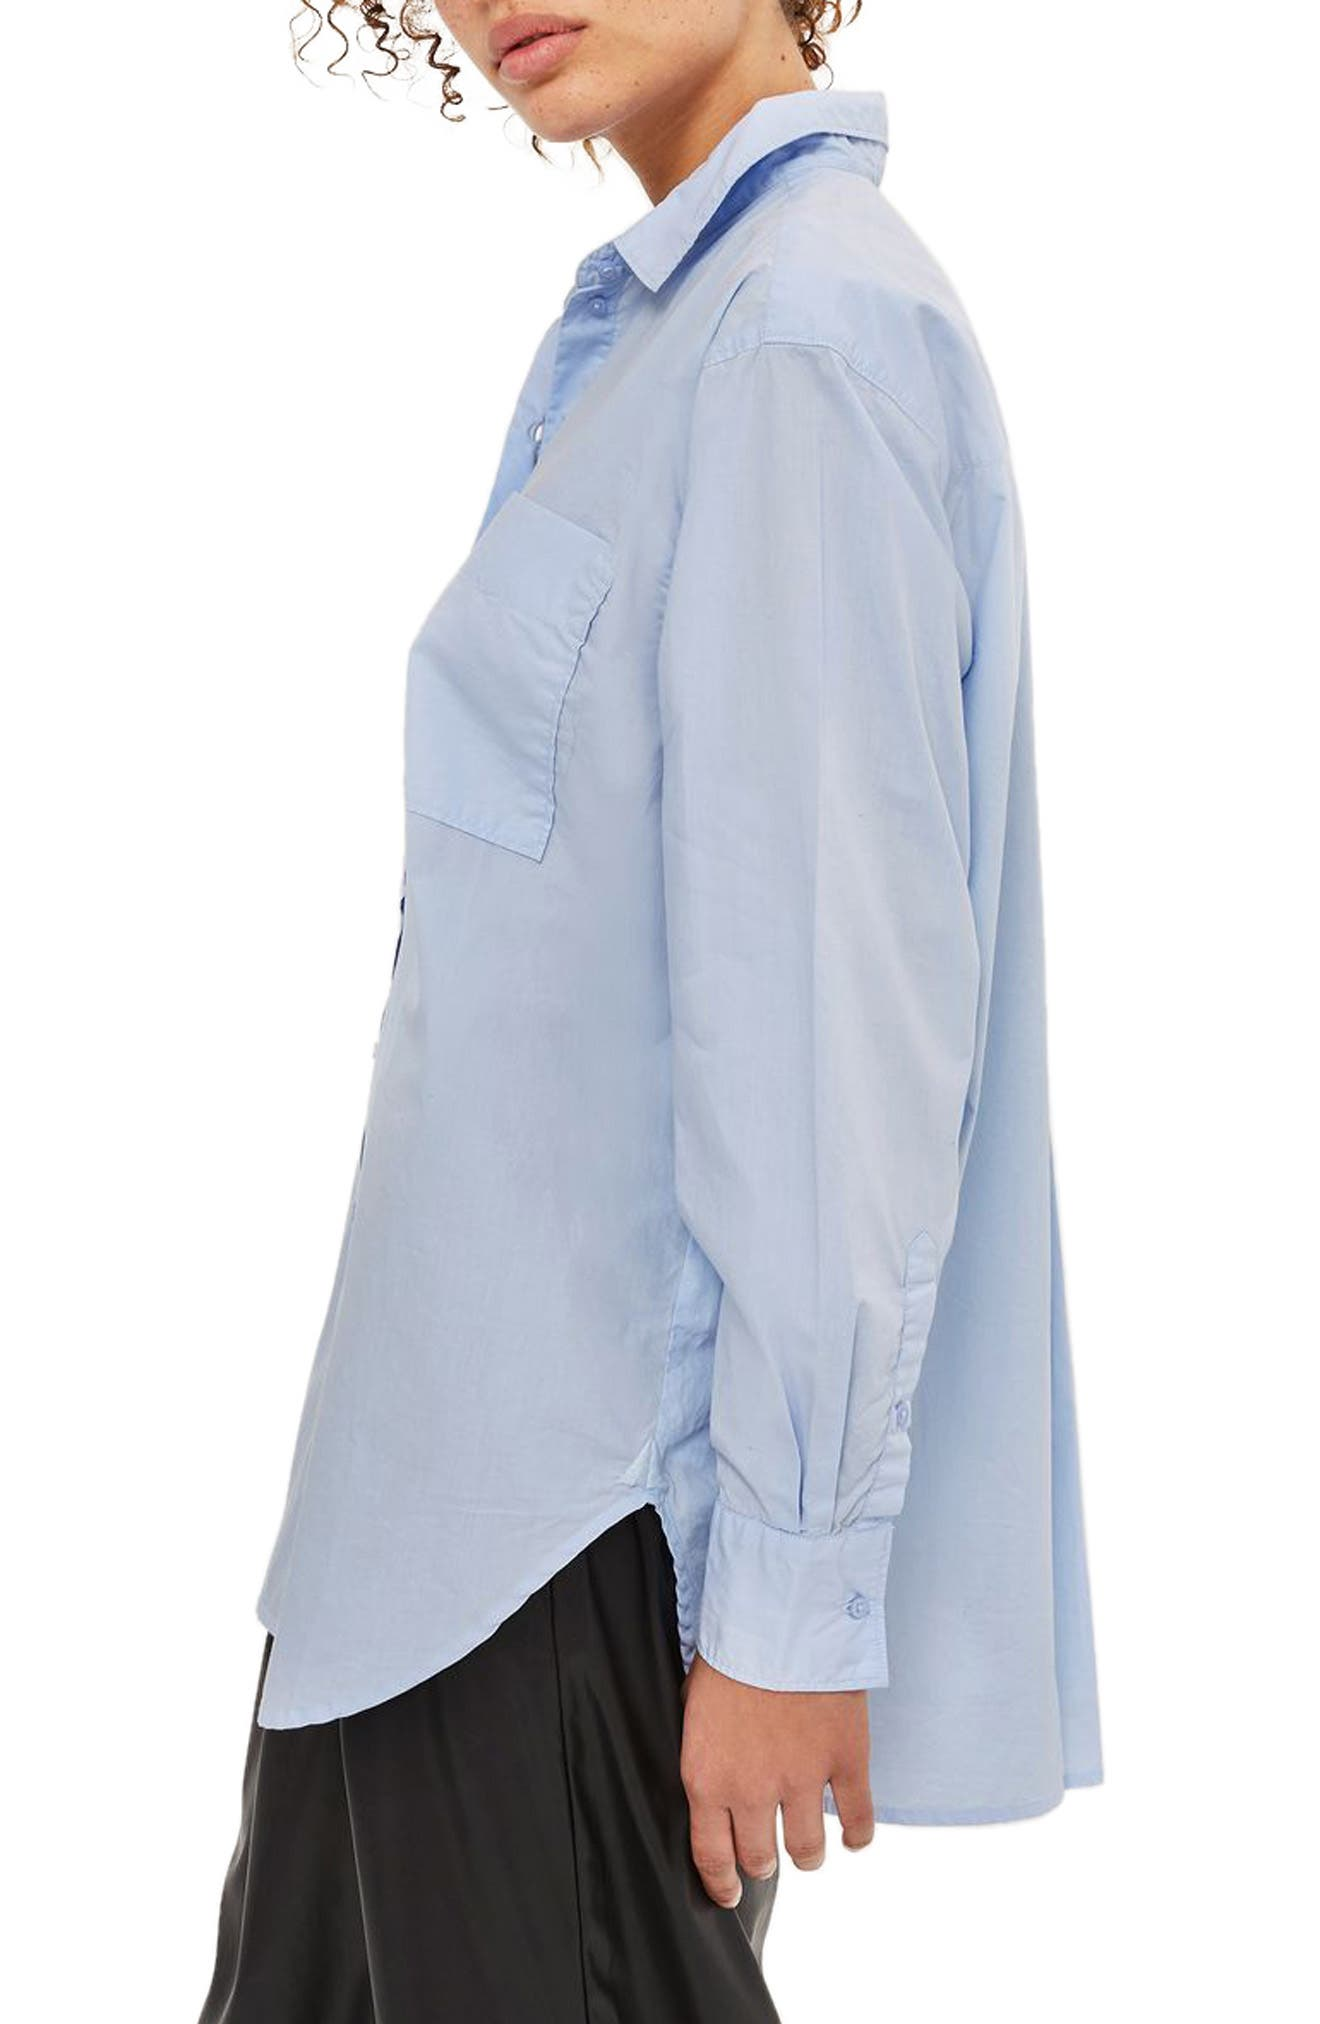 TOPSHOP, Olly Oversized Poplin Shirt, Alternate thumbnail 3, color, 450